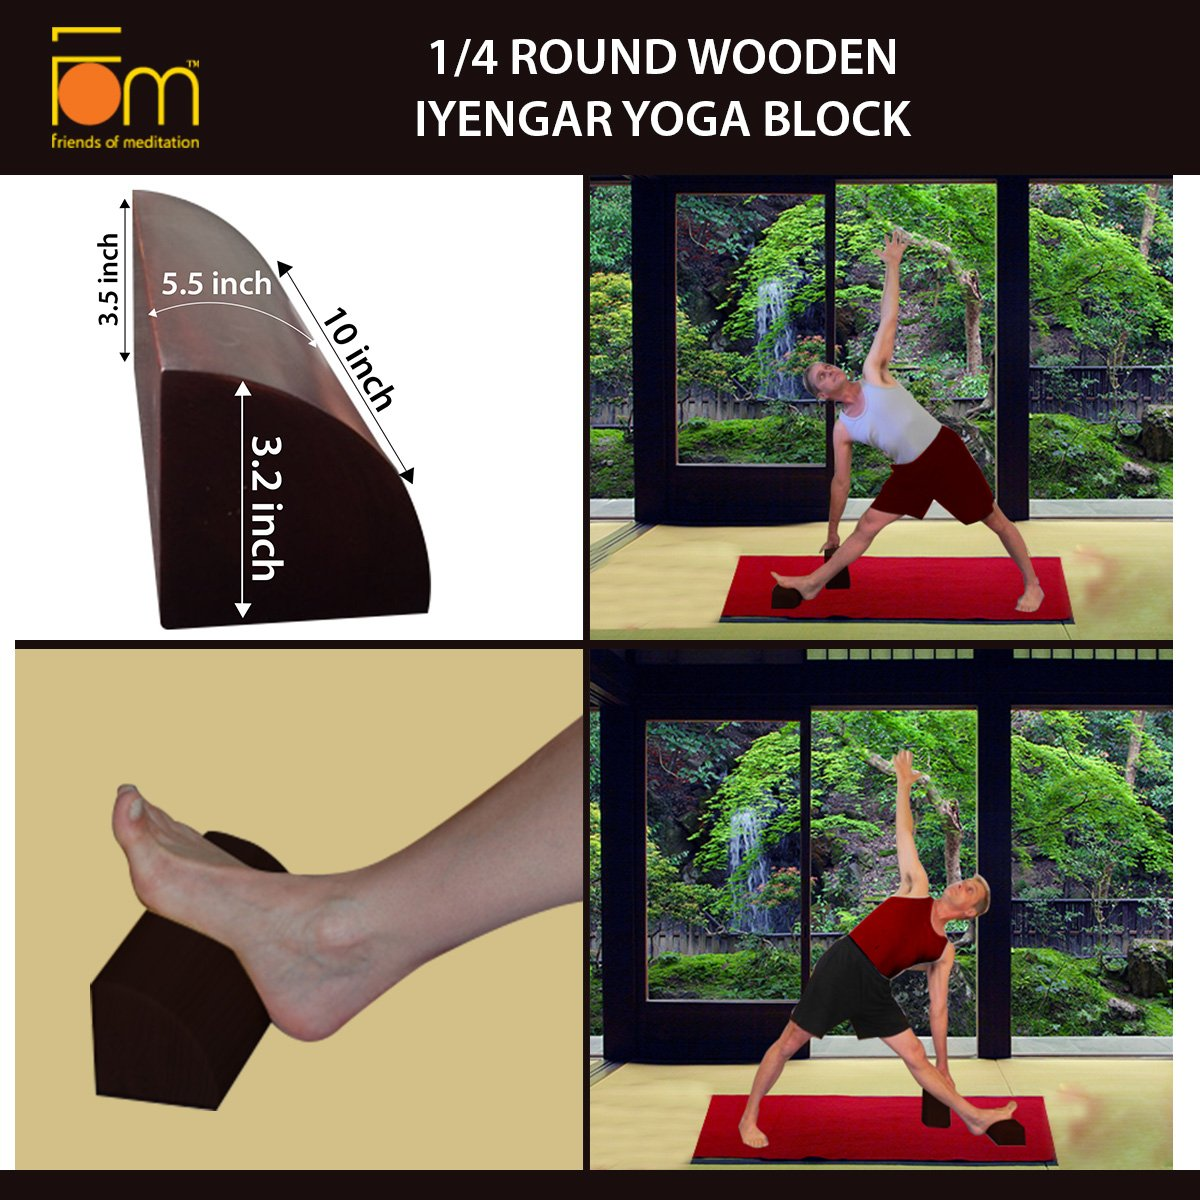 Amazon.com : Friends of Meditation 1/4 Round Wooden Iyengar ...